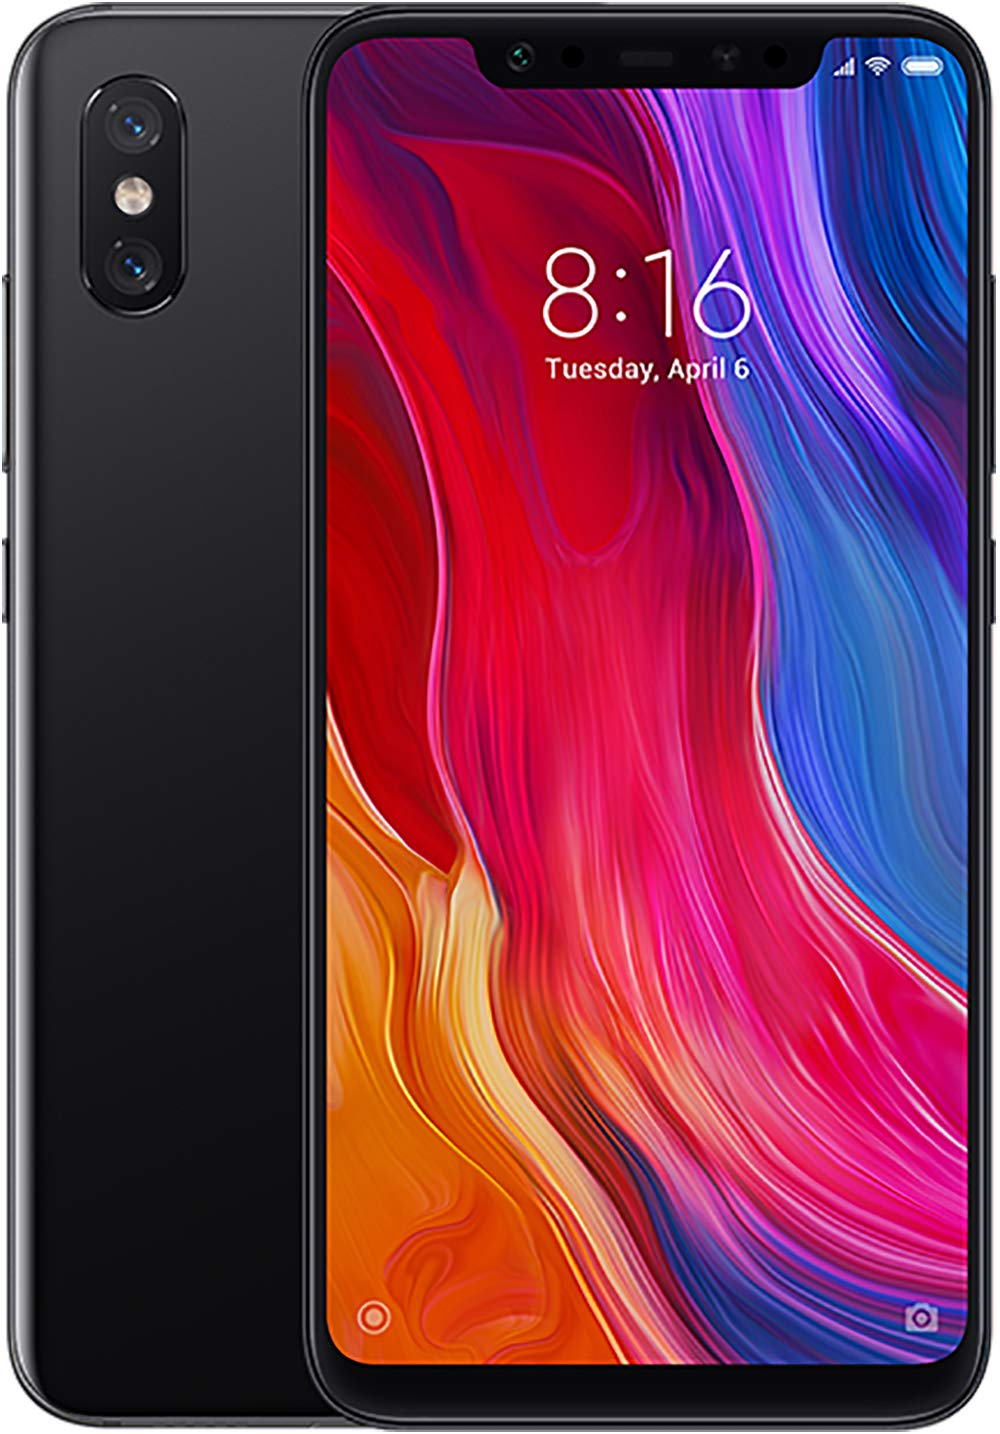 LG G6 AS993 (Latest Model) – 32GB – Black Smartphone 9/10 Unlocked